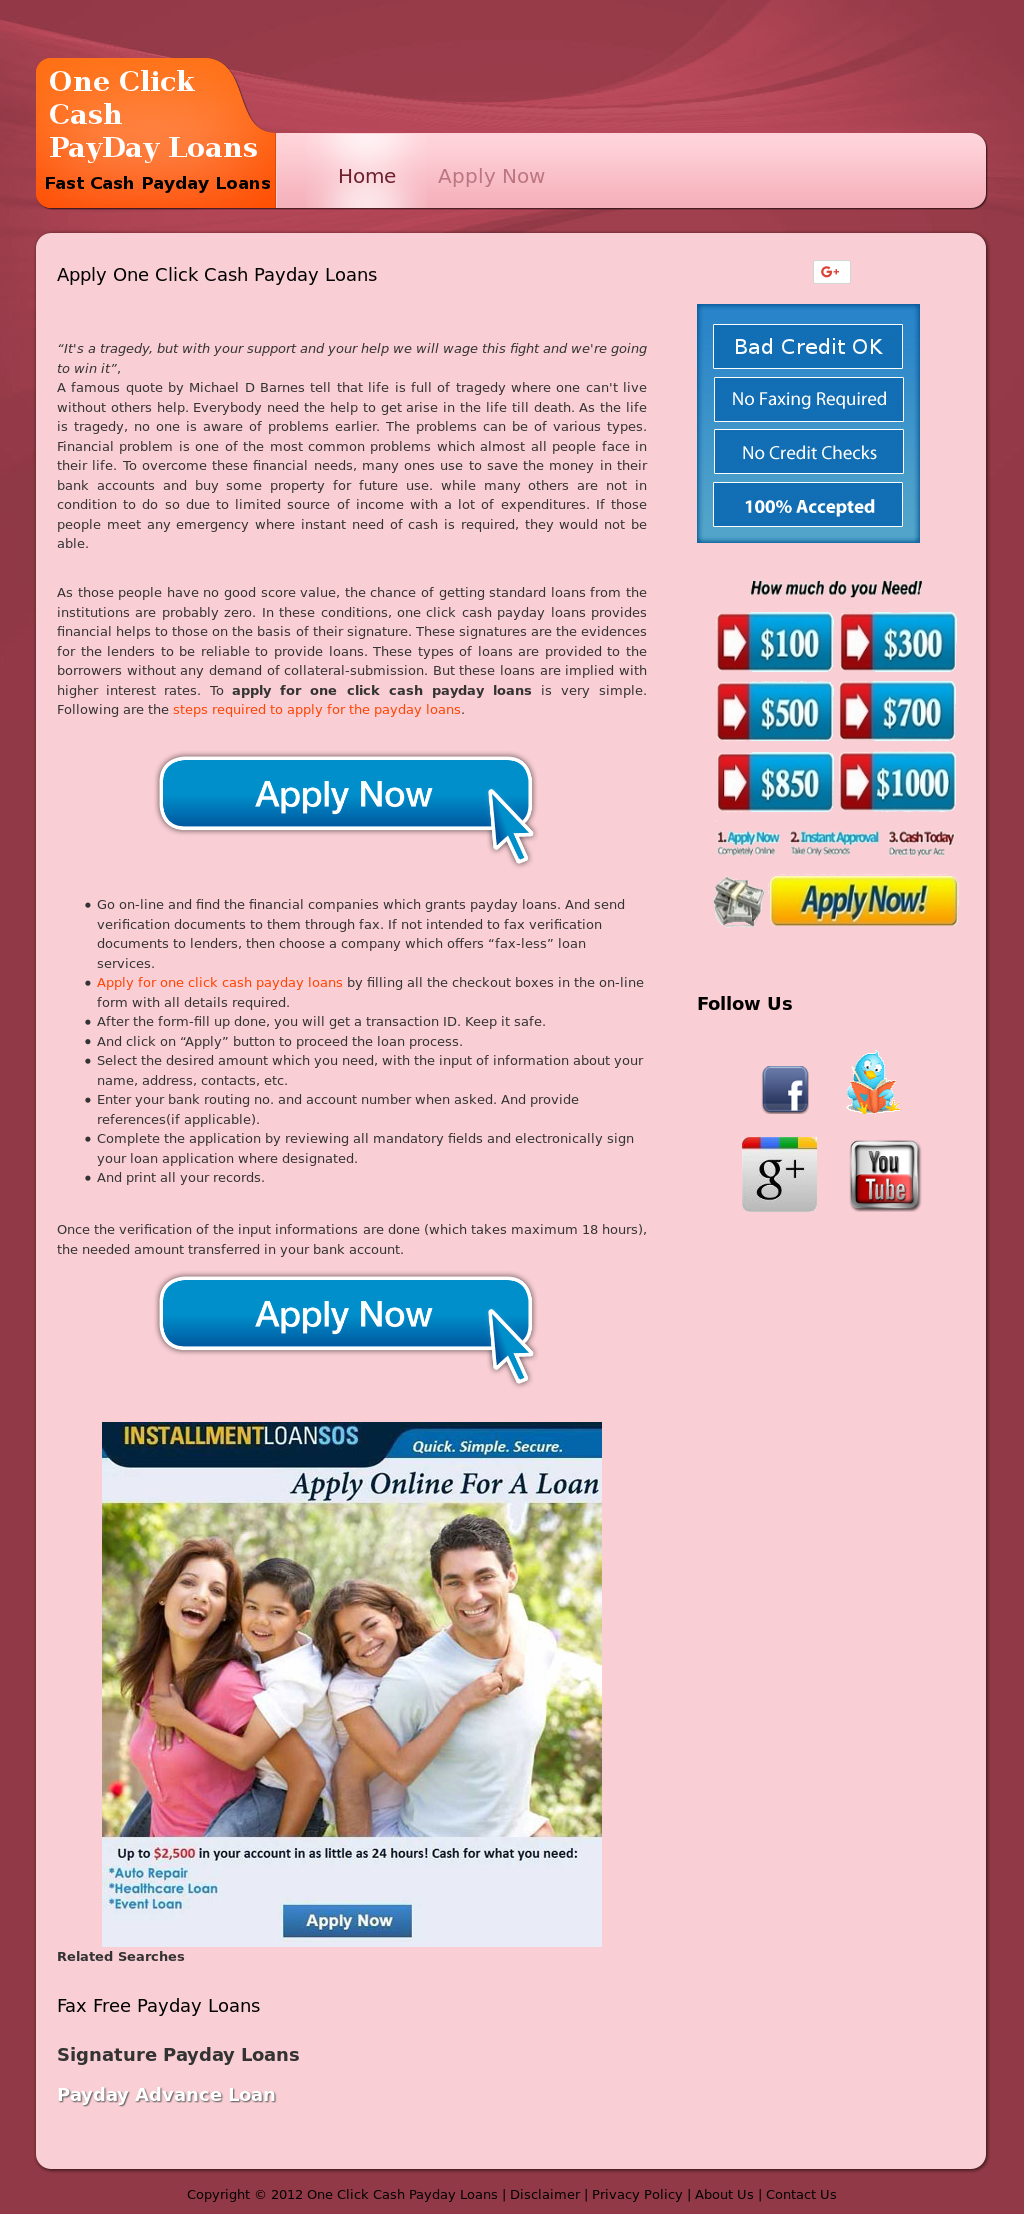 One Click Loan >> One Click Cash Payday Loans Competitors Revenue And Employees